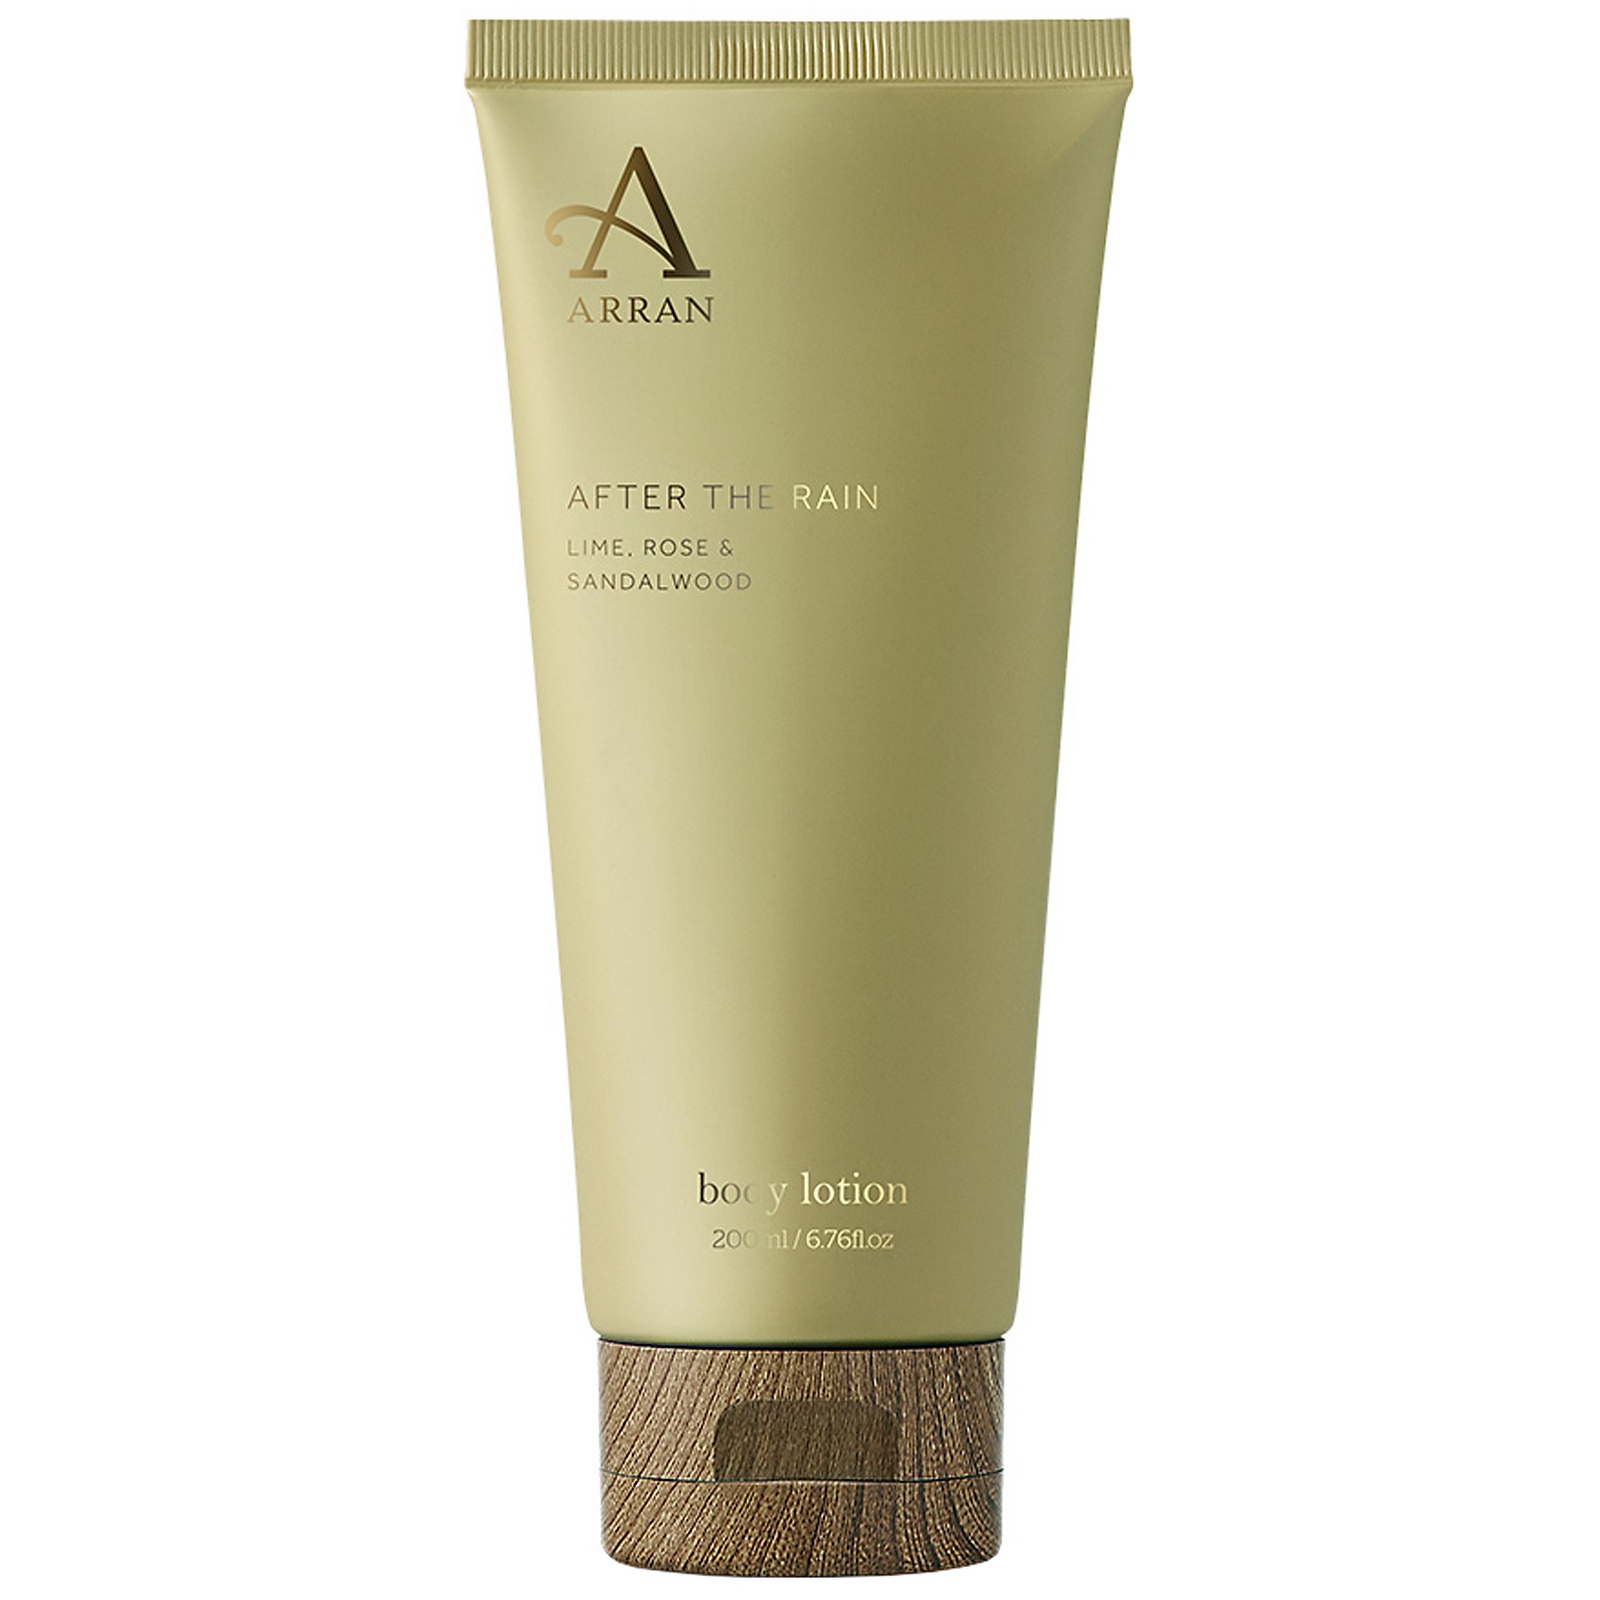 ARRAN Sense of Scotland After The Rain - Lime, Rose, & Sandalwood Body Lotion 200ml